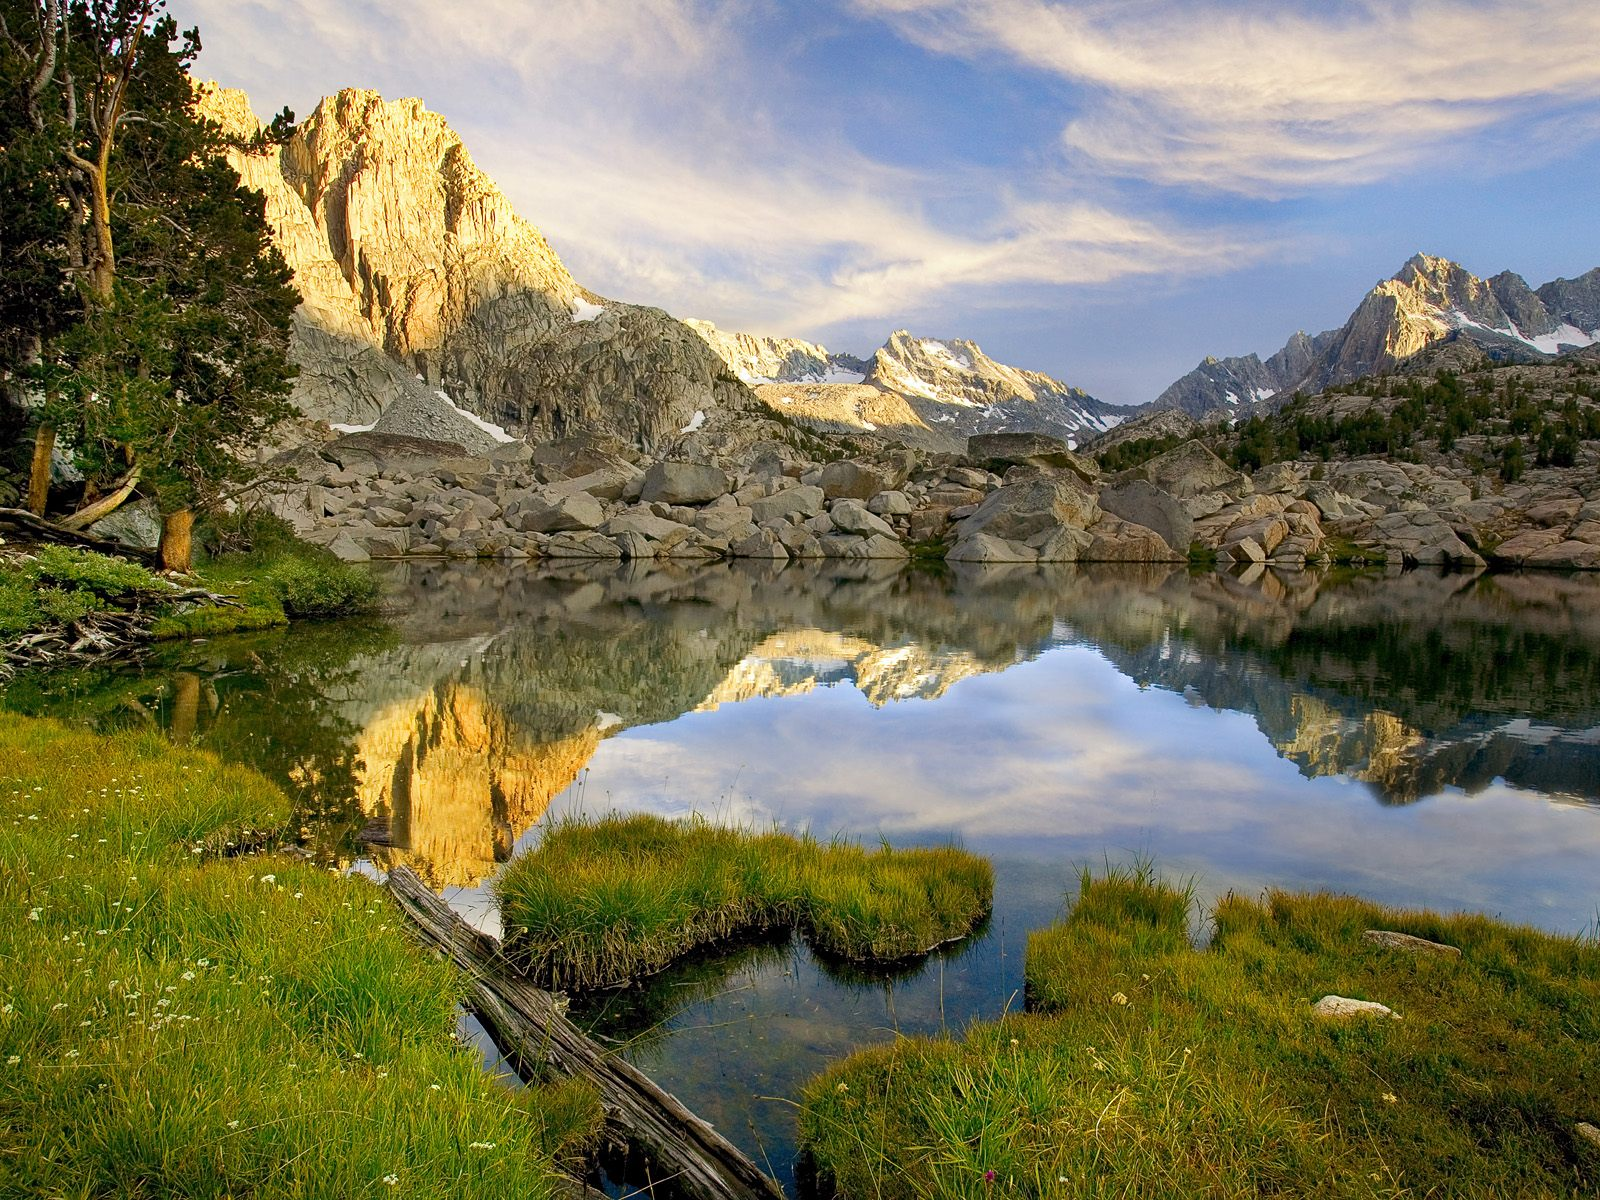 Pee wee lake sierra nevada mountains california picture for Sierra fish in english